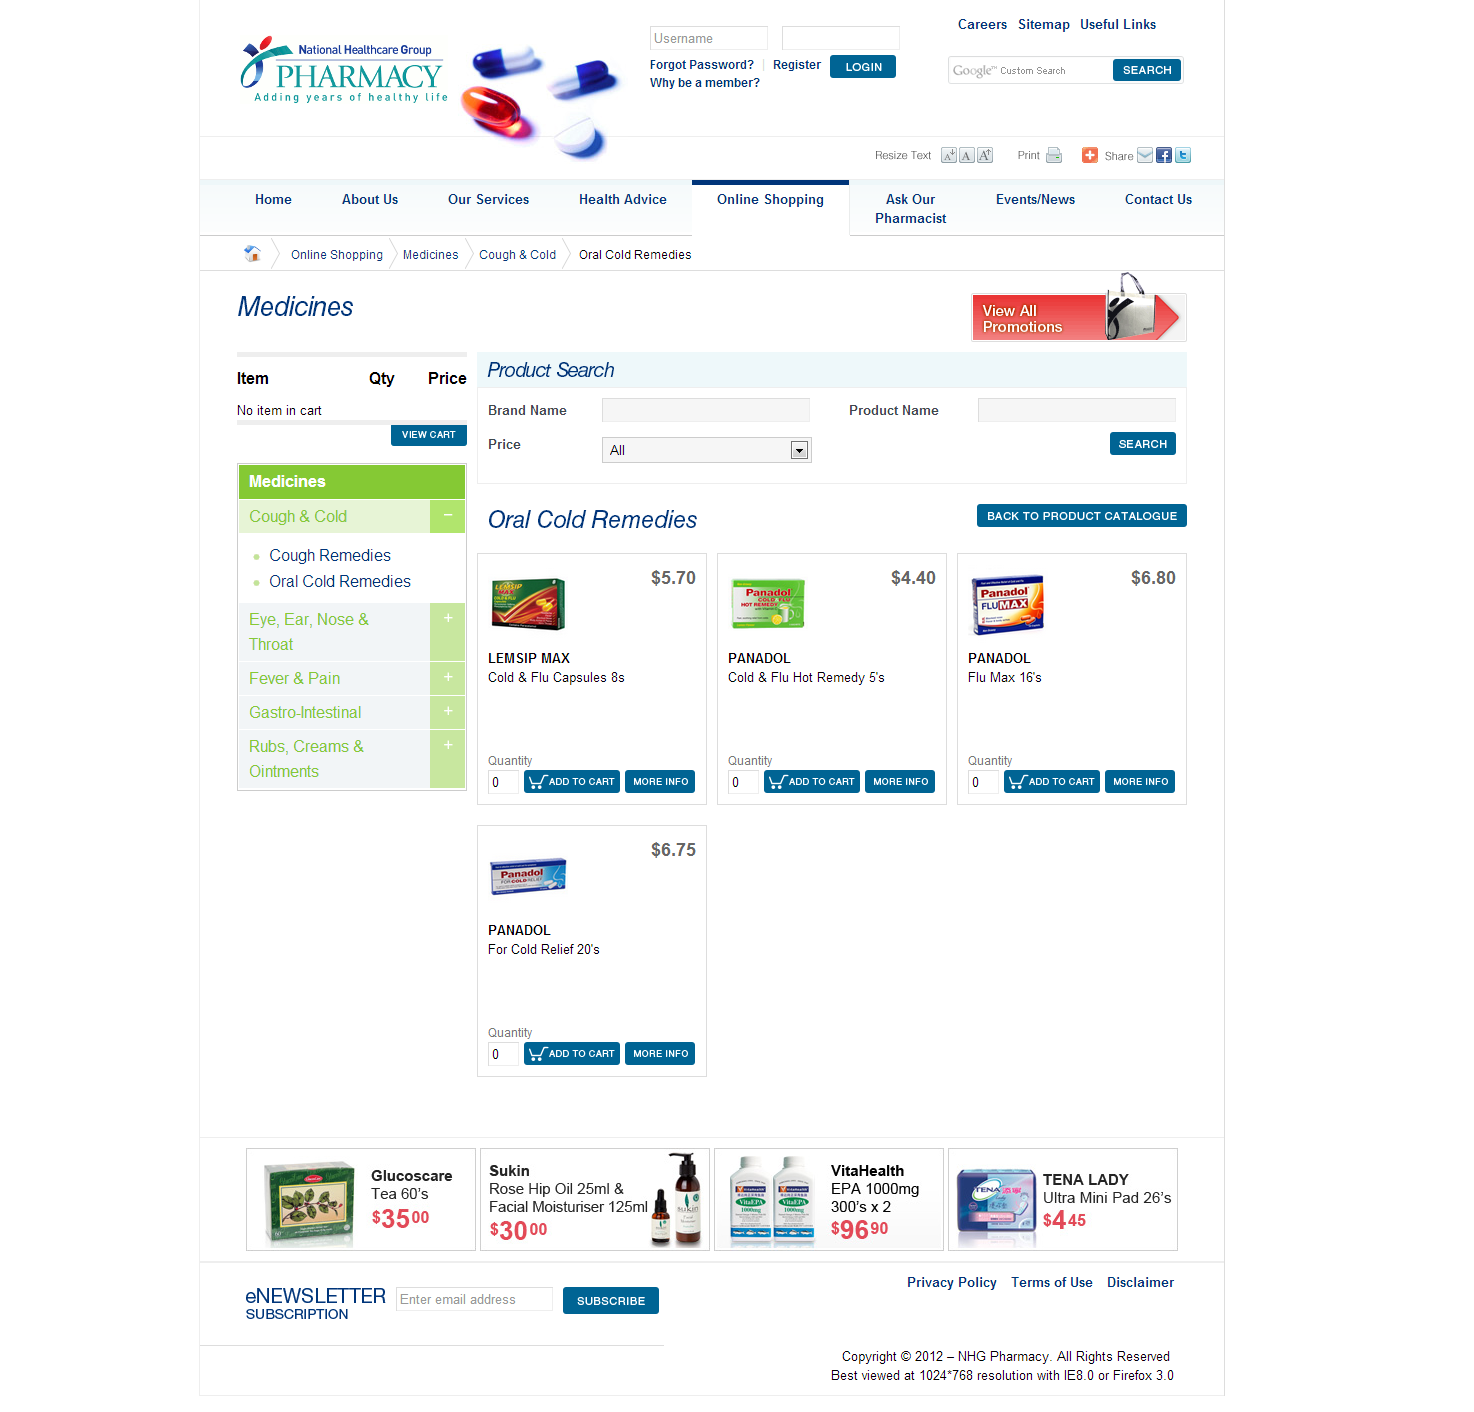 NHG Pharmacy Corporate and Ecommerce Portal Image 6